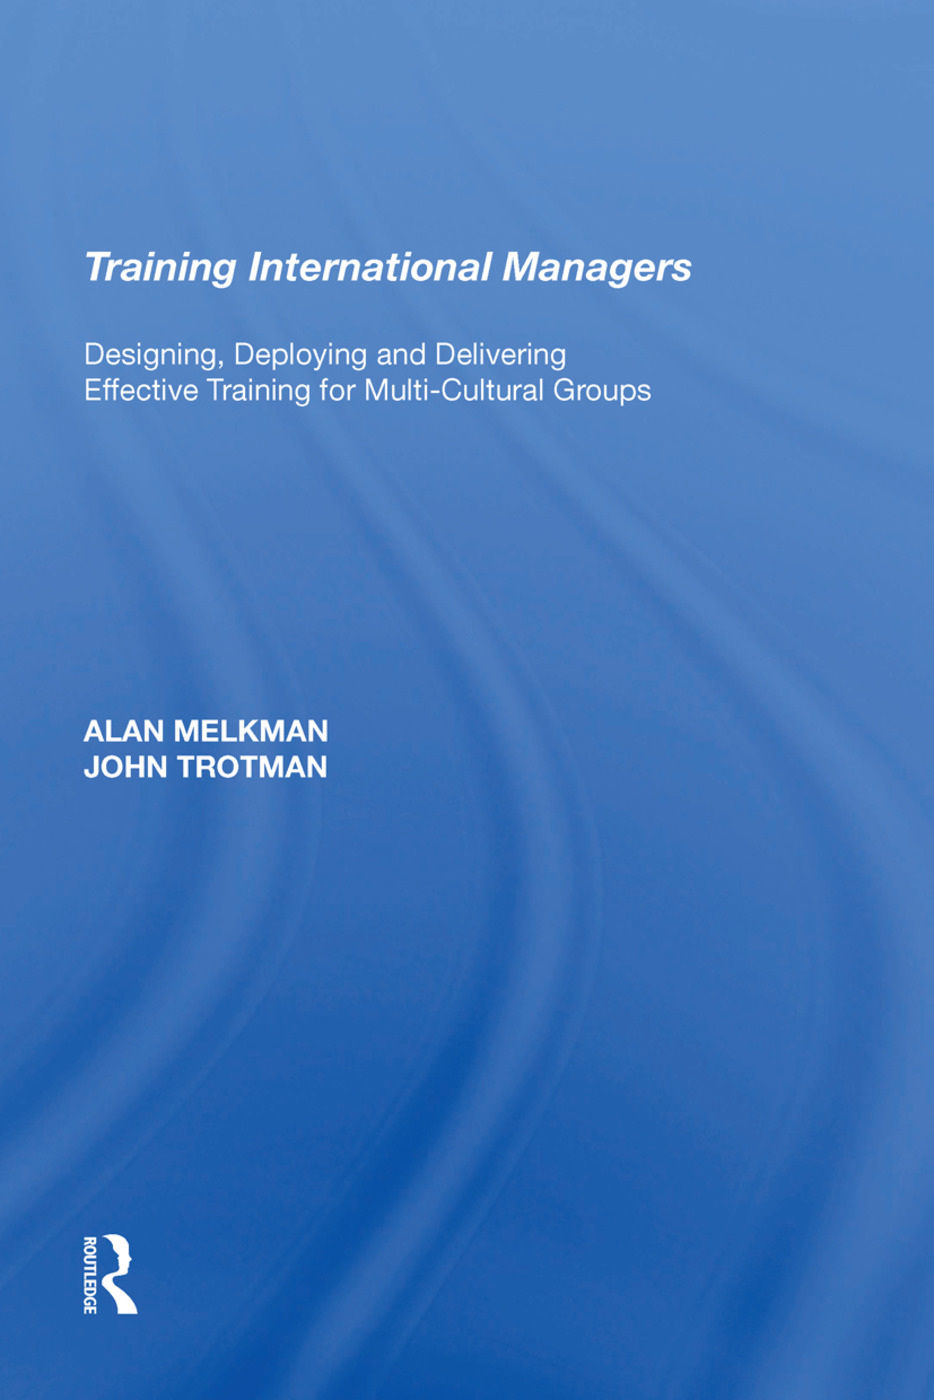 Training International Managers